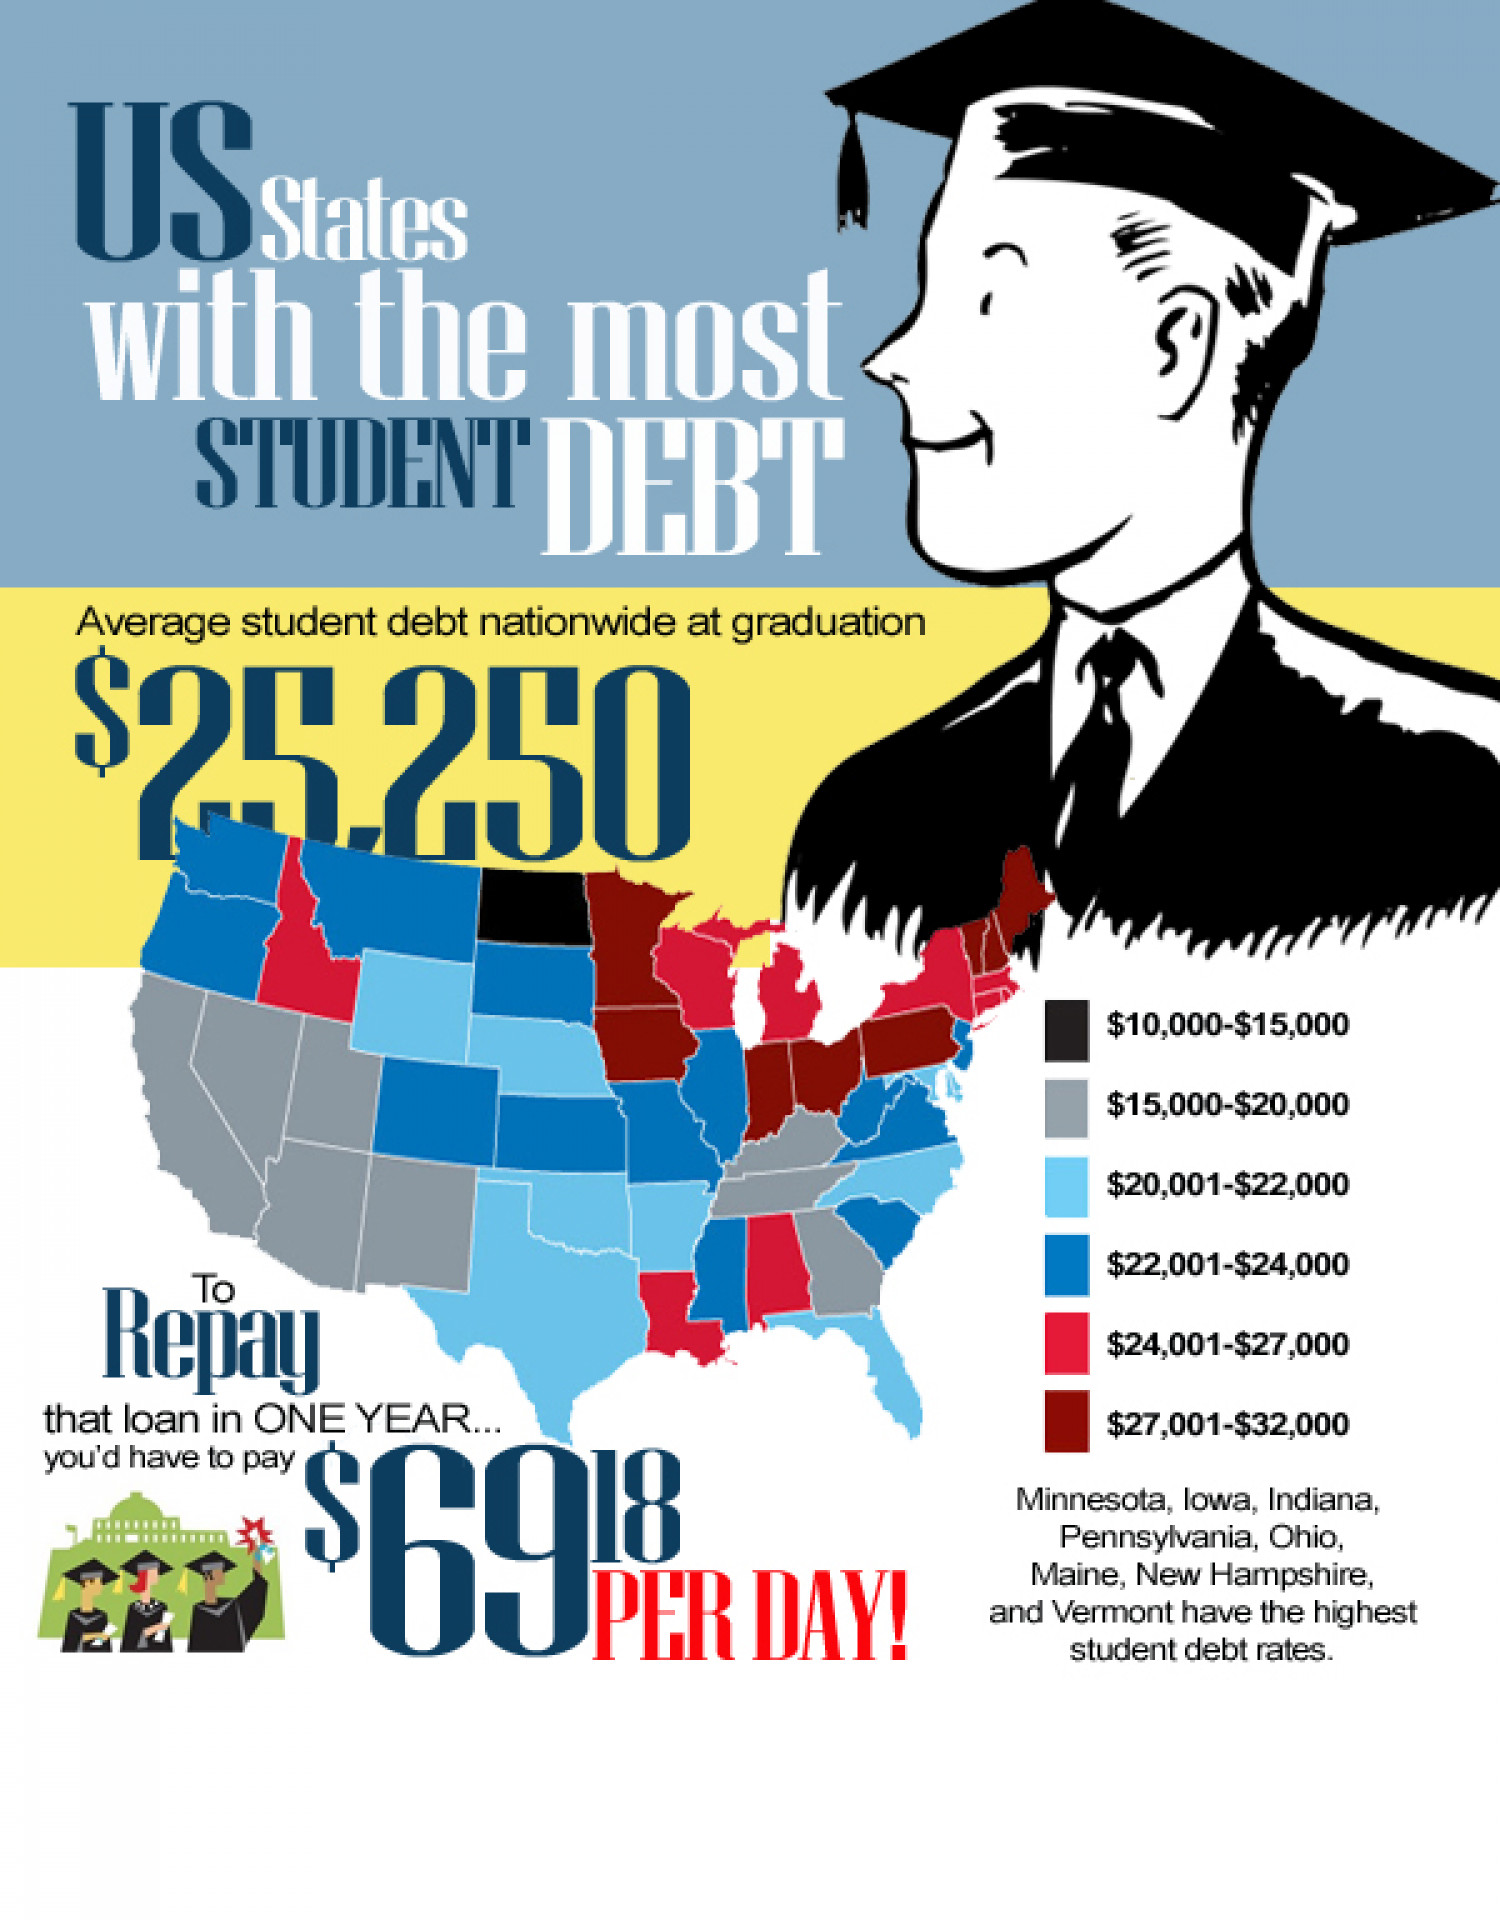 US States With The Most Student Debt Infographic